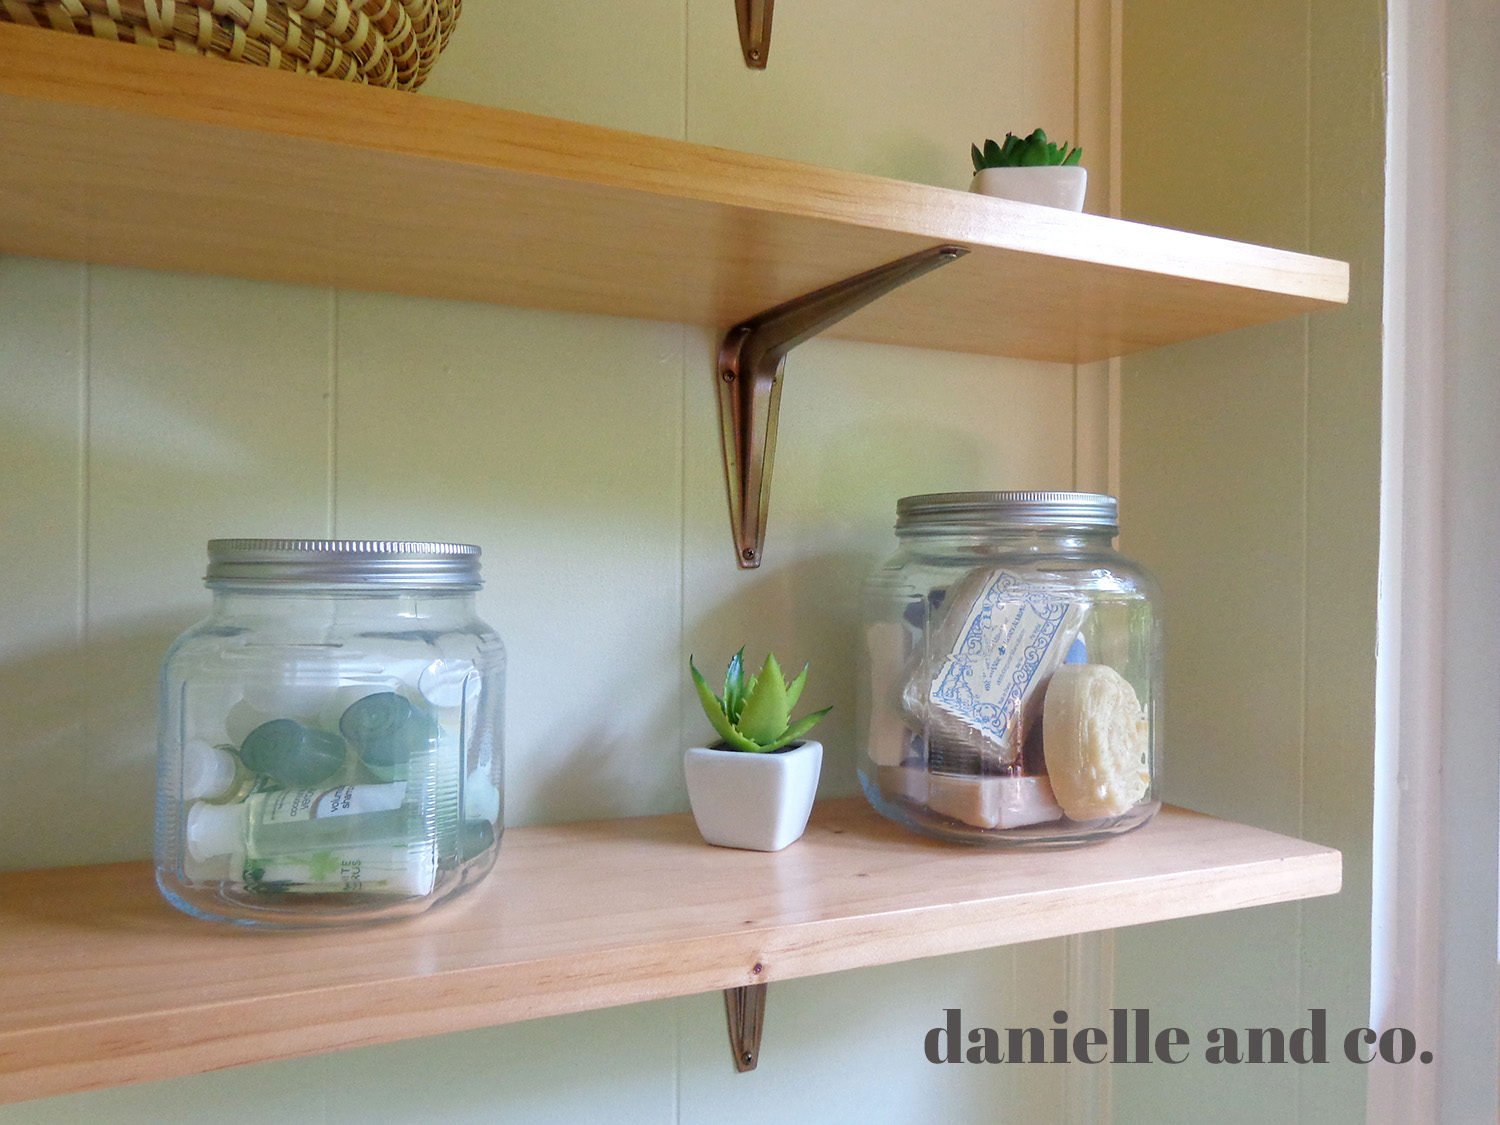 Accessorizing bathroom shelves on a budget, from danielleandco.com